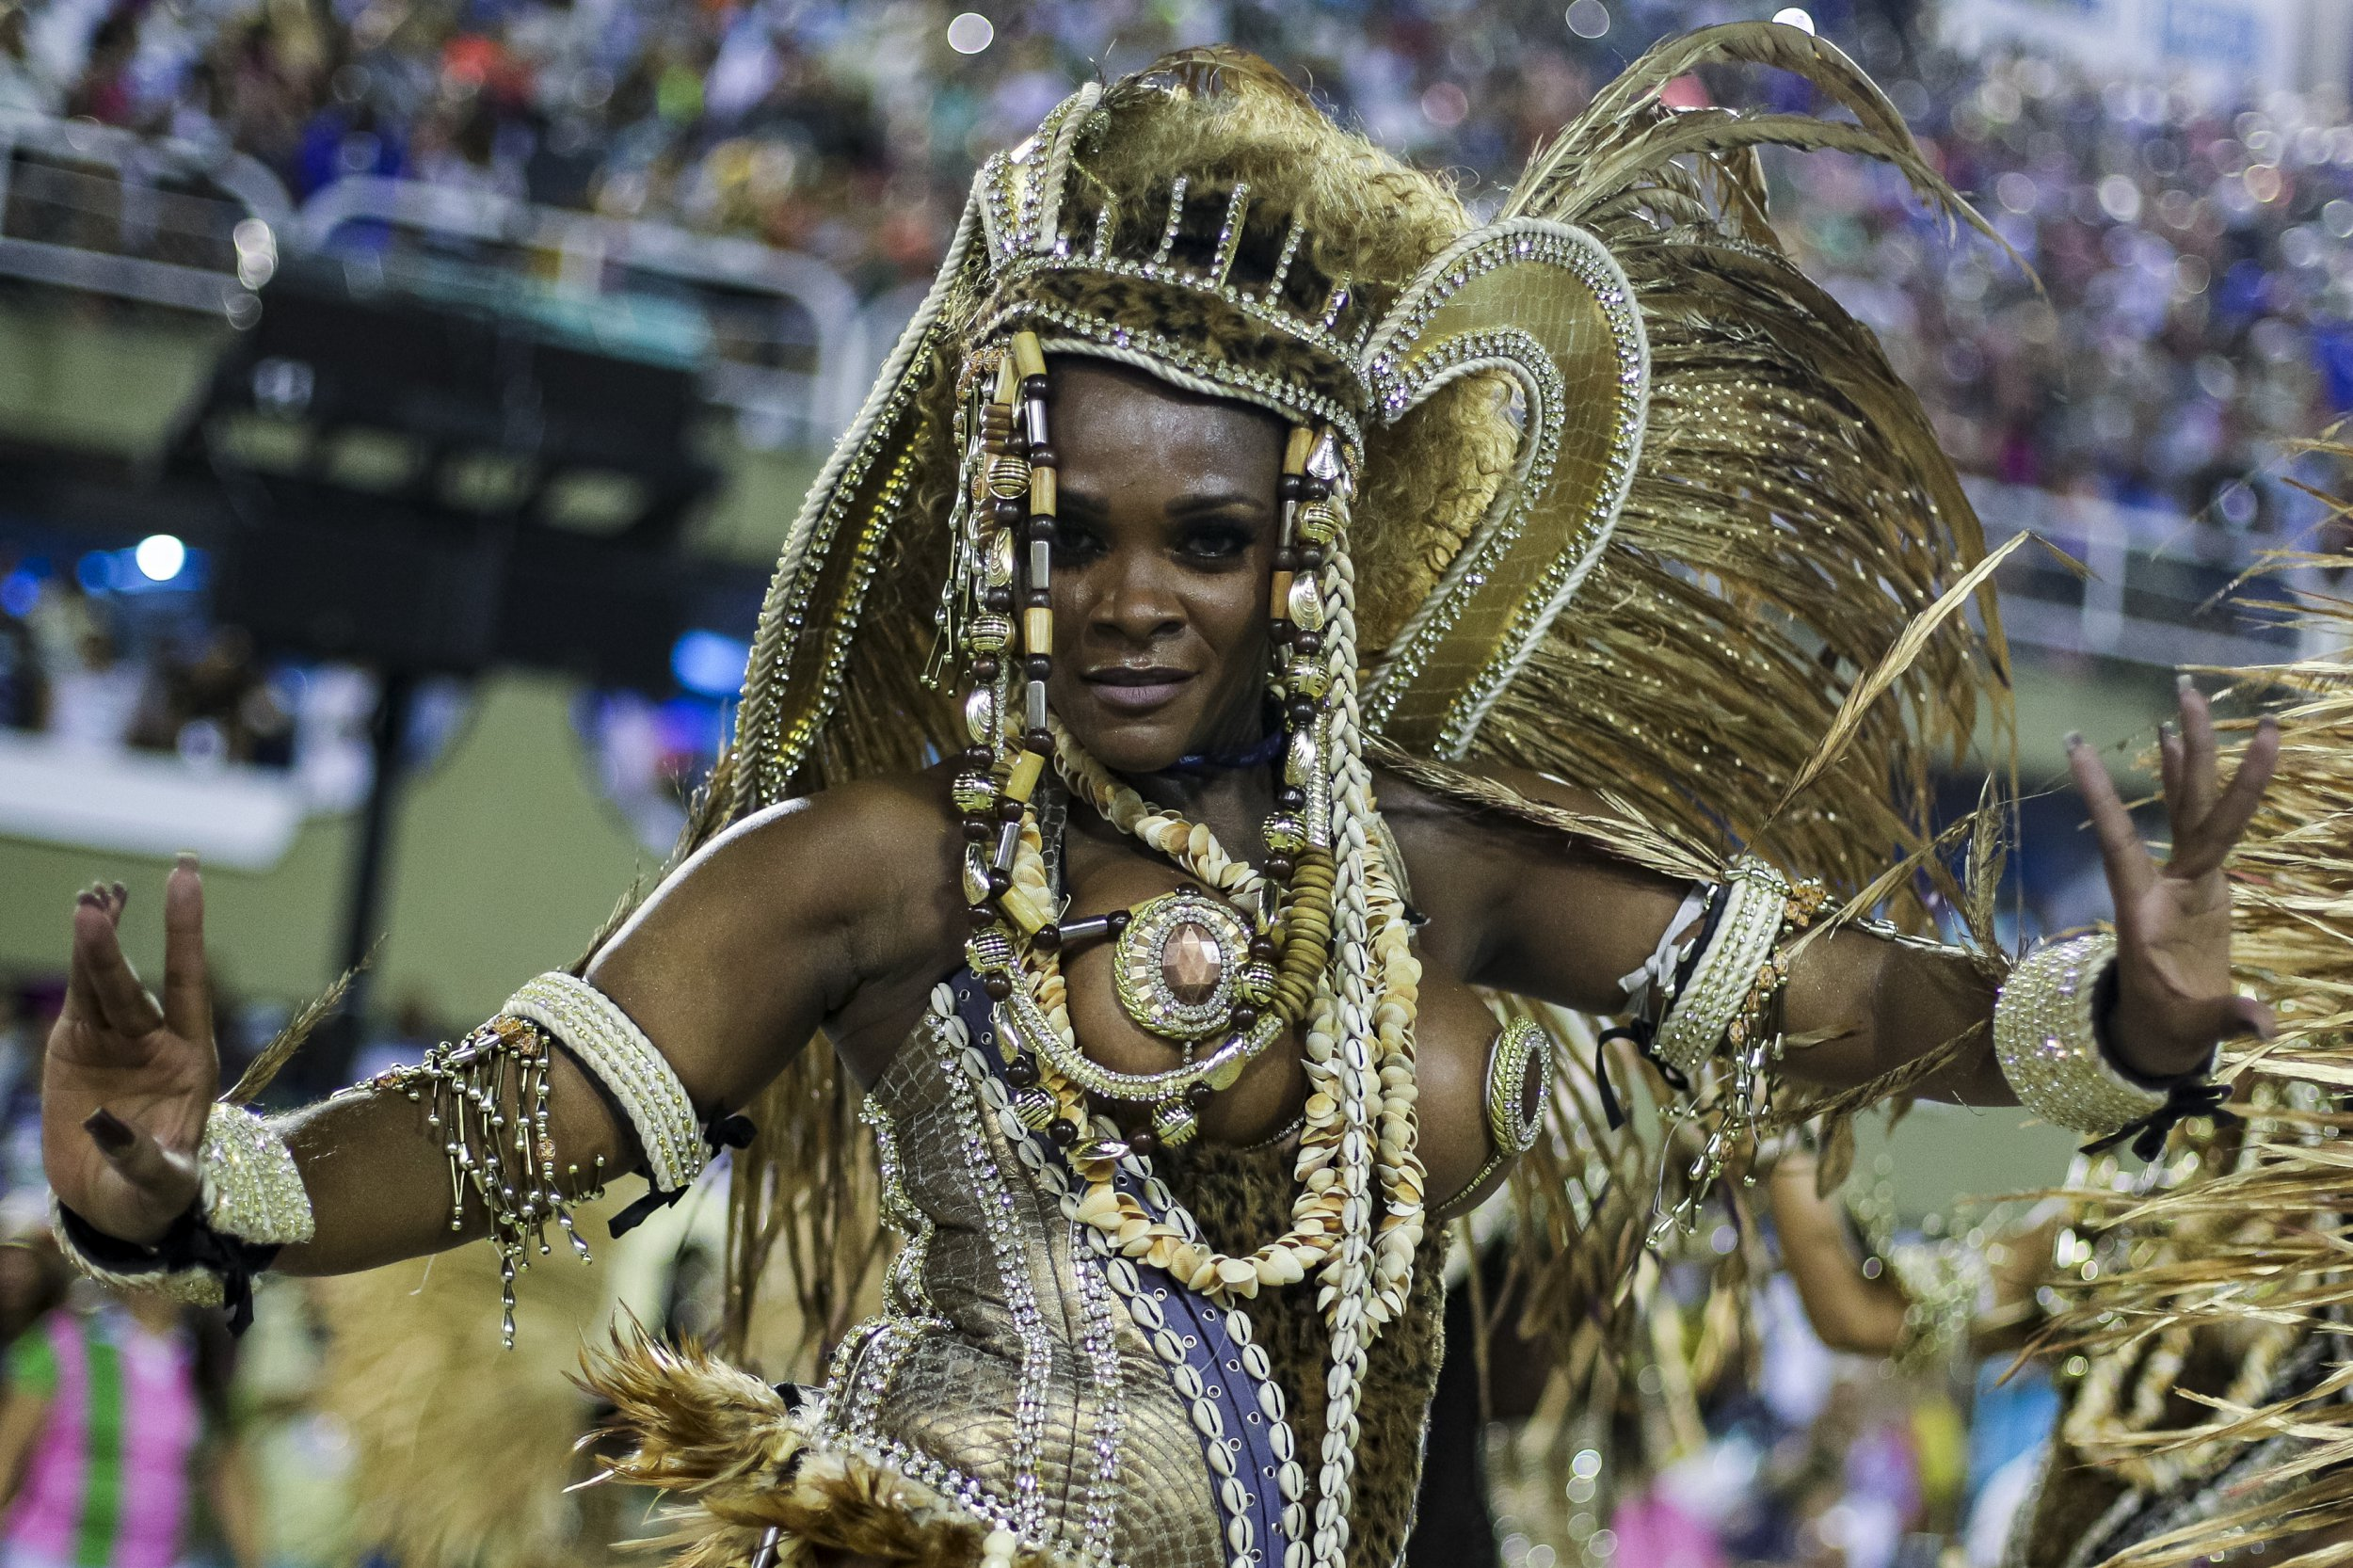 RIO DE JANEIRO, BRAZIL - MARCH 04: A member of Mangueira Samba School performs during the parade at 2019 Brazilian Carnival at Sapucai Sambadrome on March 04, 2019 in Rio de Janeiro, Brazil. Rio's two nights of Carnival parades began on March 03 in a burst of fireworks and to the cheers of thousands of tourists and locals who have previously enjoyed street celebrations (known as 'blocos de rua') all around the city. (Photo by Buda Mendes/Getty Images)